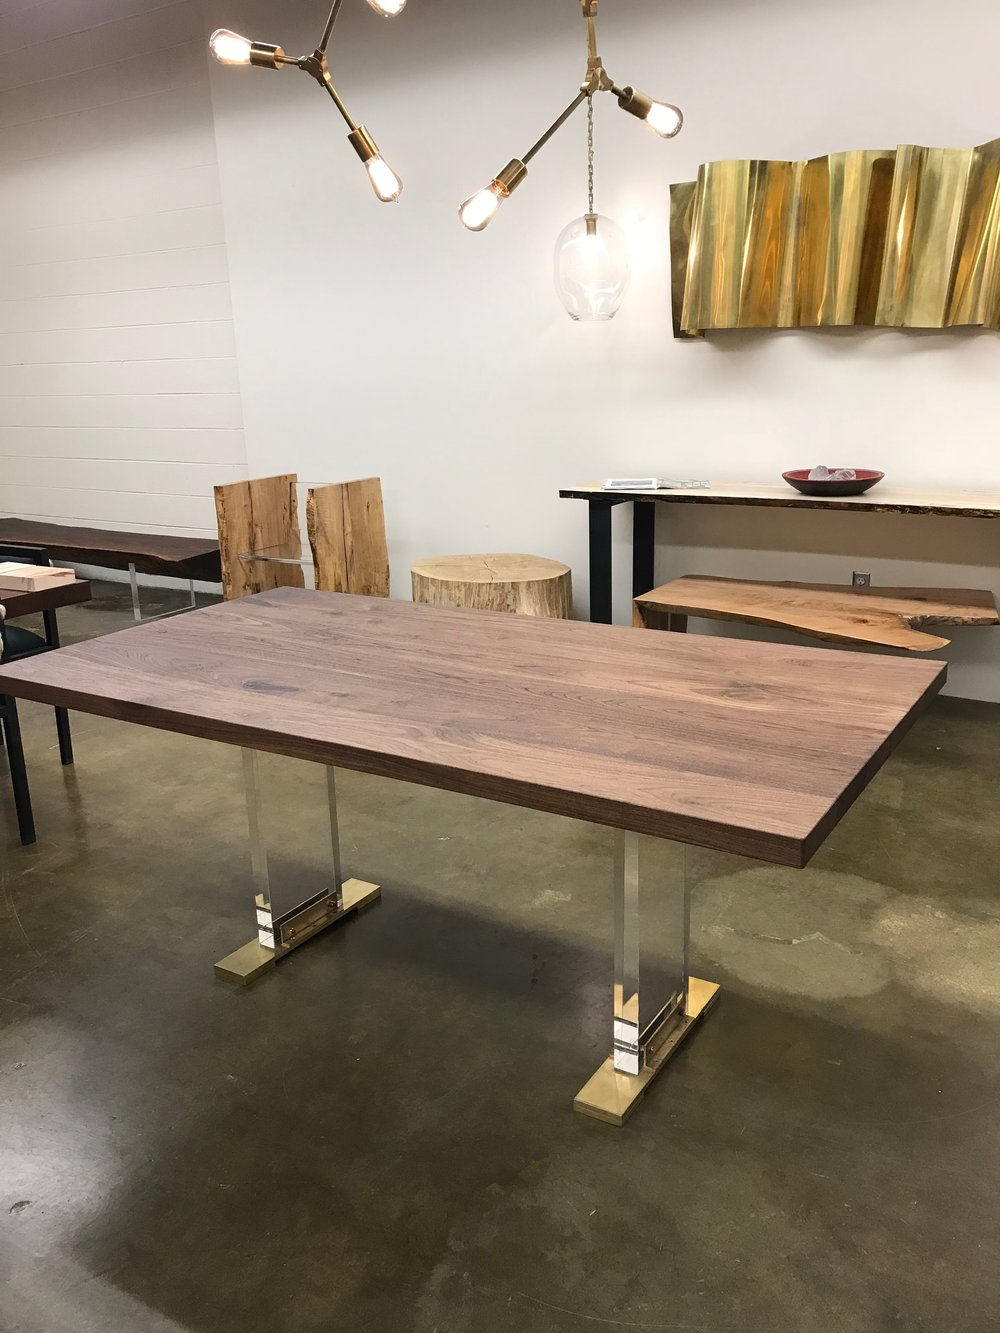 josh-utsey-design-live-edge-walnut-acrylic-custom-furniture-charlotte-nc-brass-table.jpg